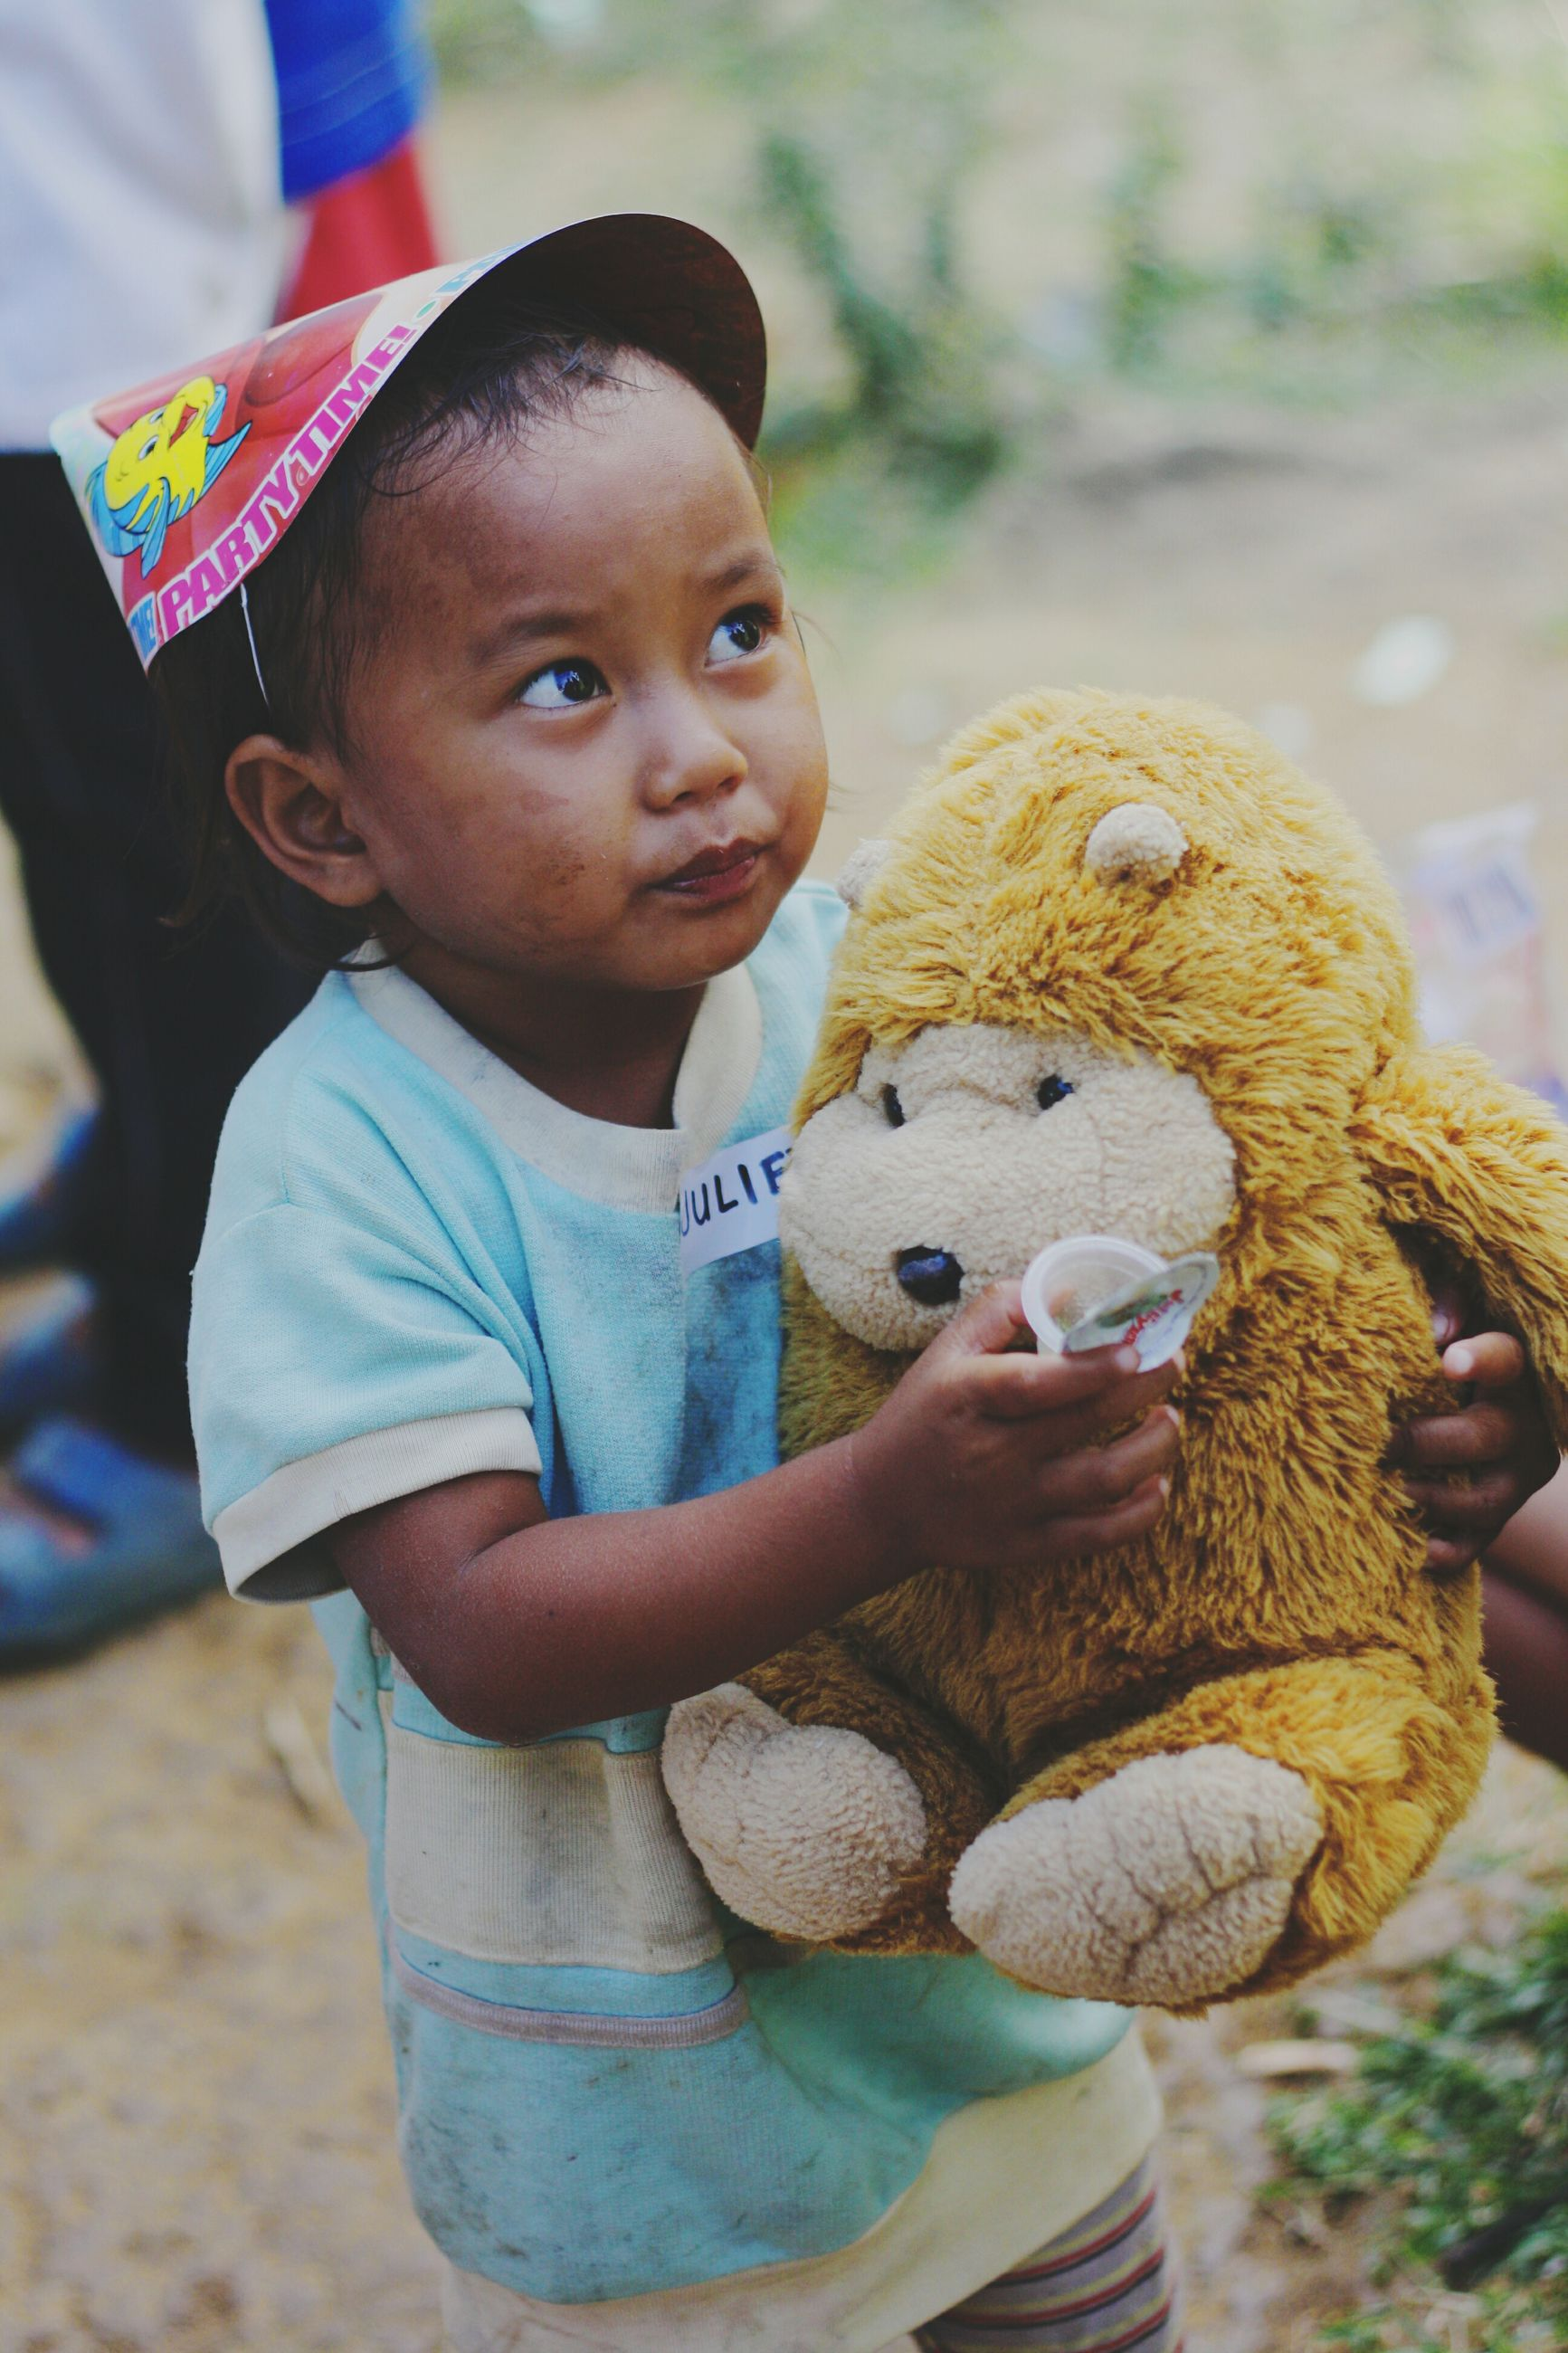 childhood, teddy bear, stuffed toy, looking at camera, real people, toy, portrait, innocence, one person, cute, focus on foreground, boys, holding, happiness, lifestyles, day, smiling, outdoors, close-up, people